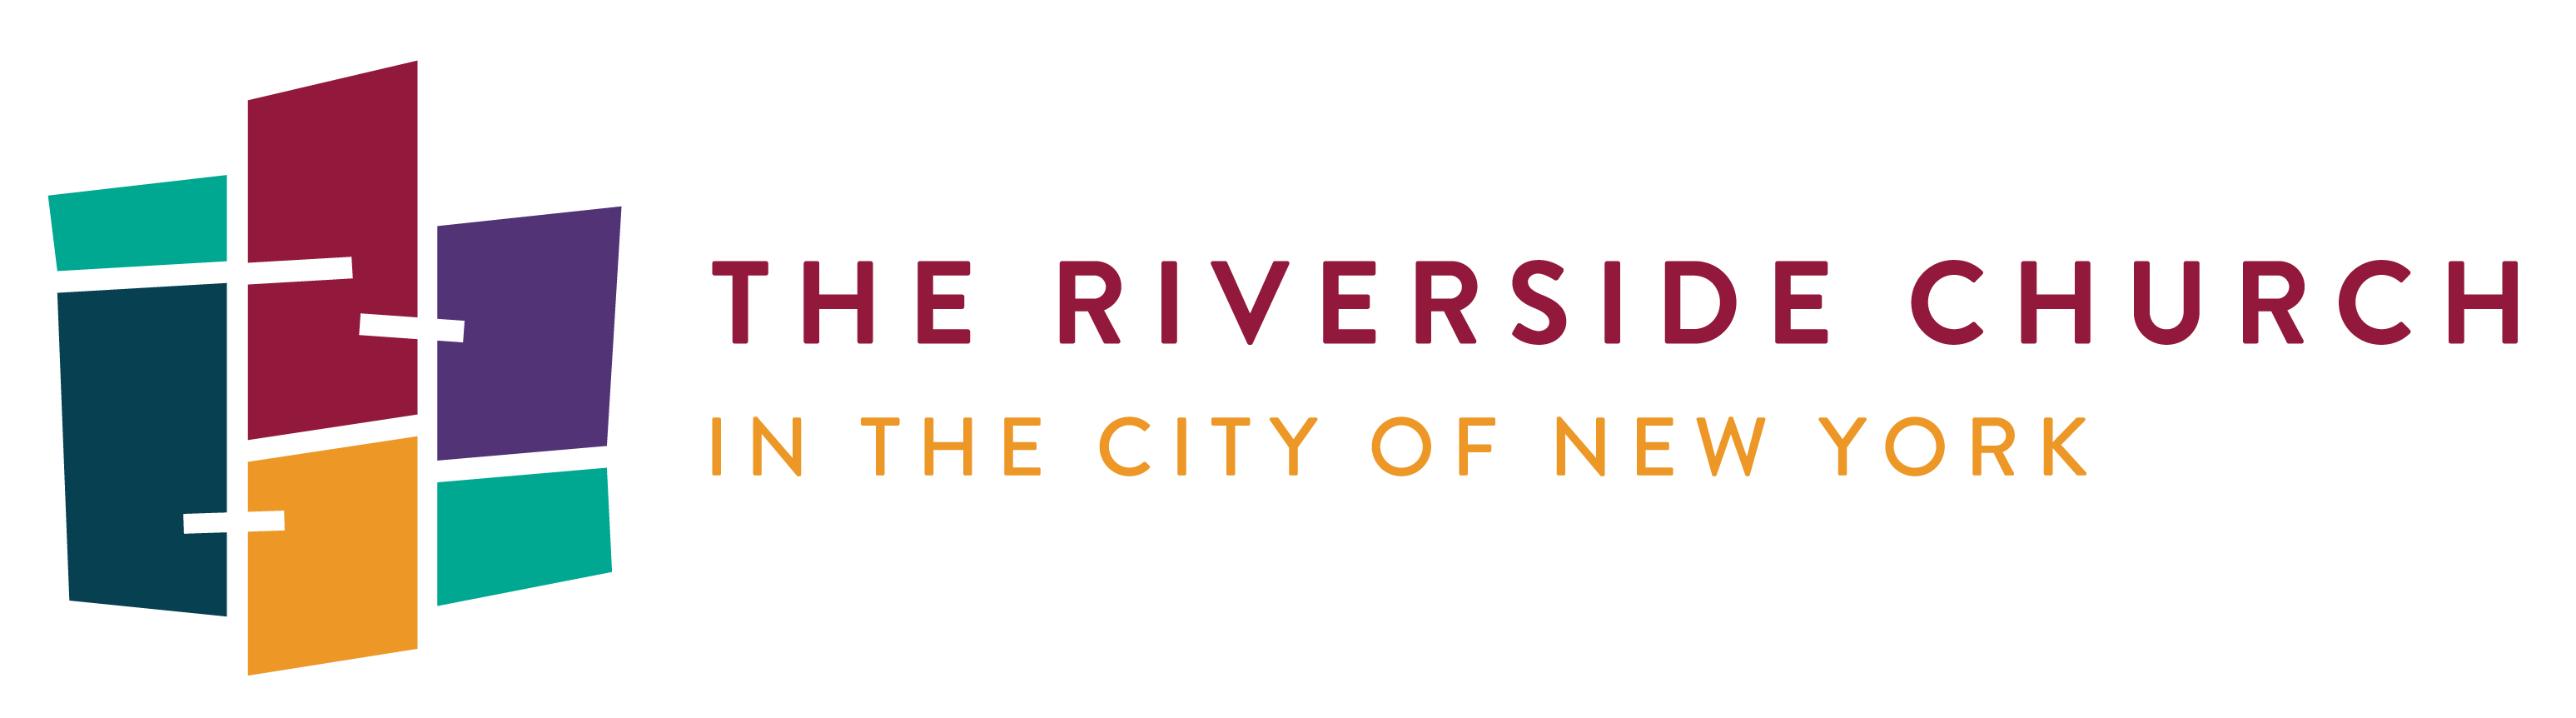 The Riverside Church  logo